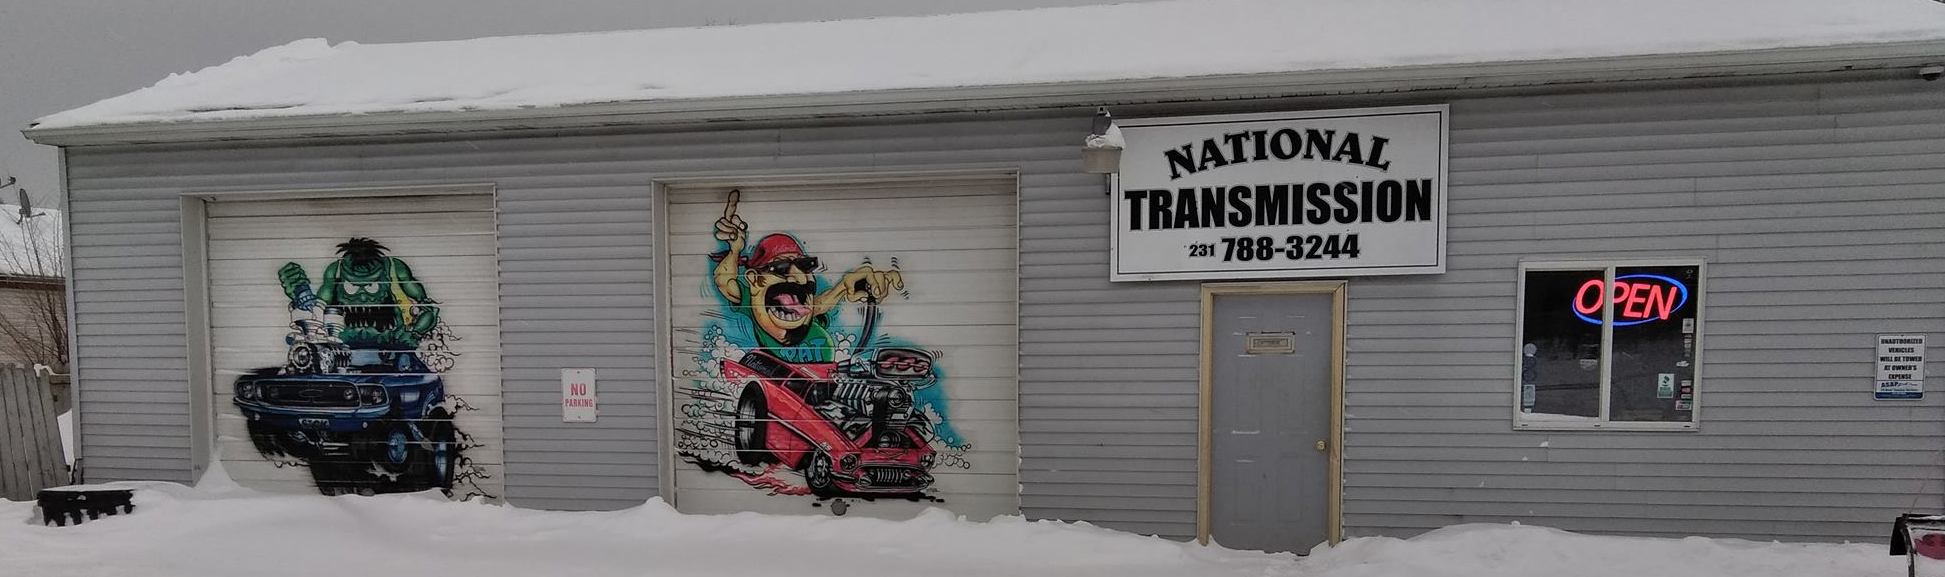 National Transmission Muskegon, MI